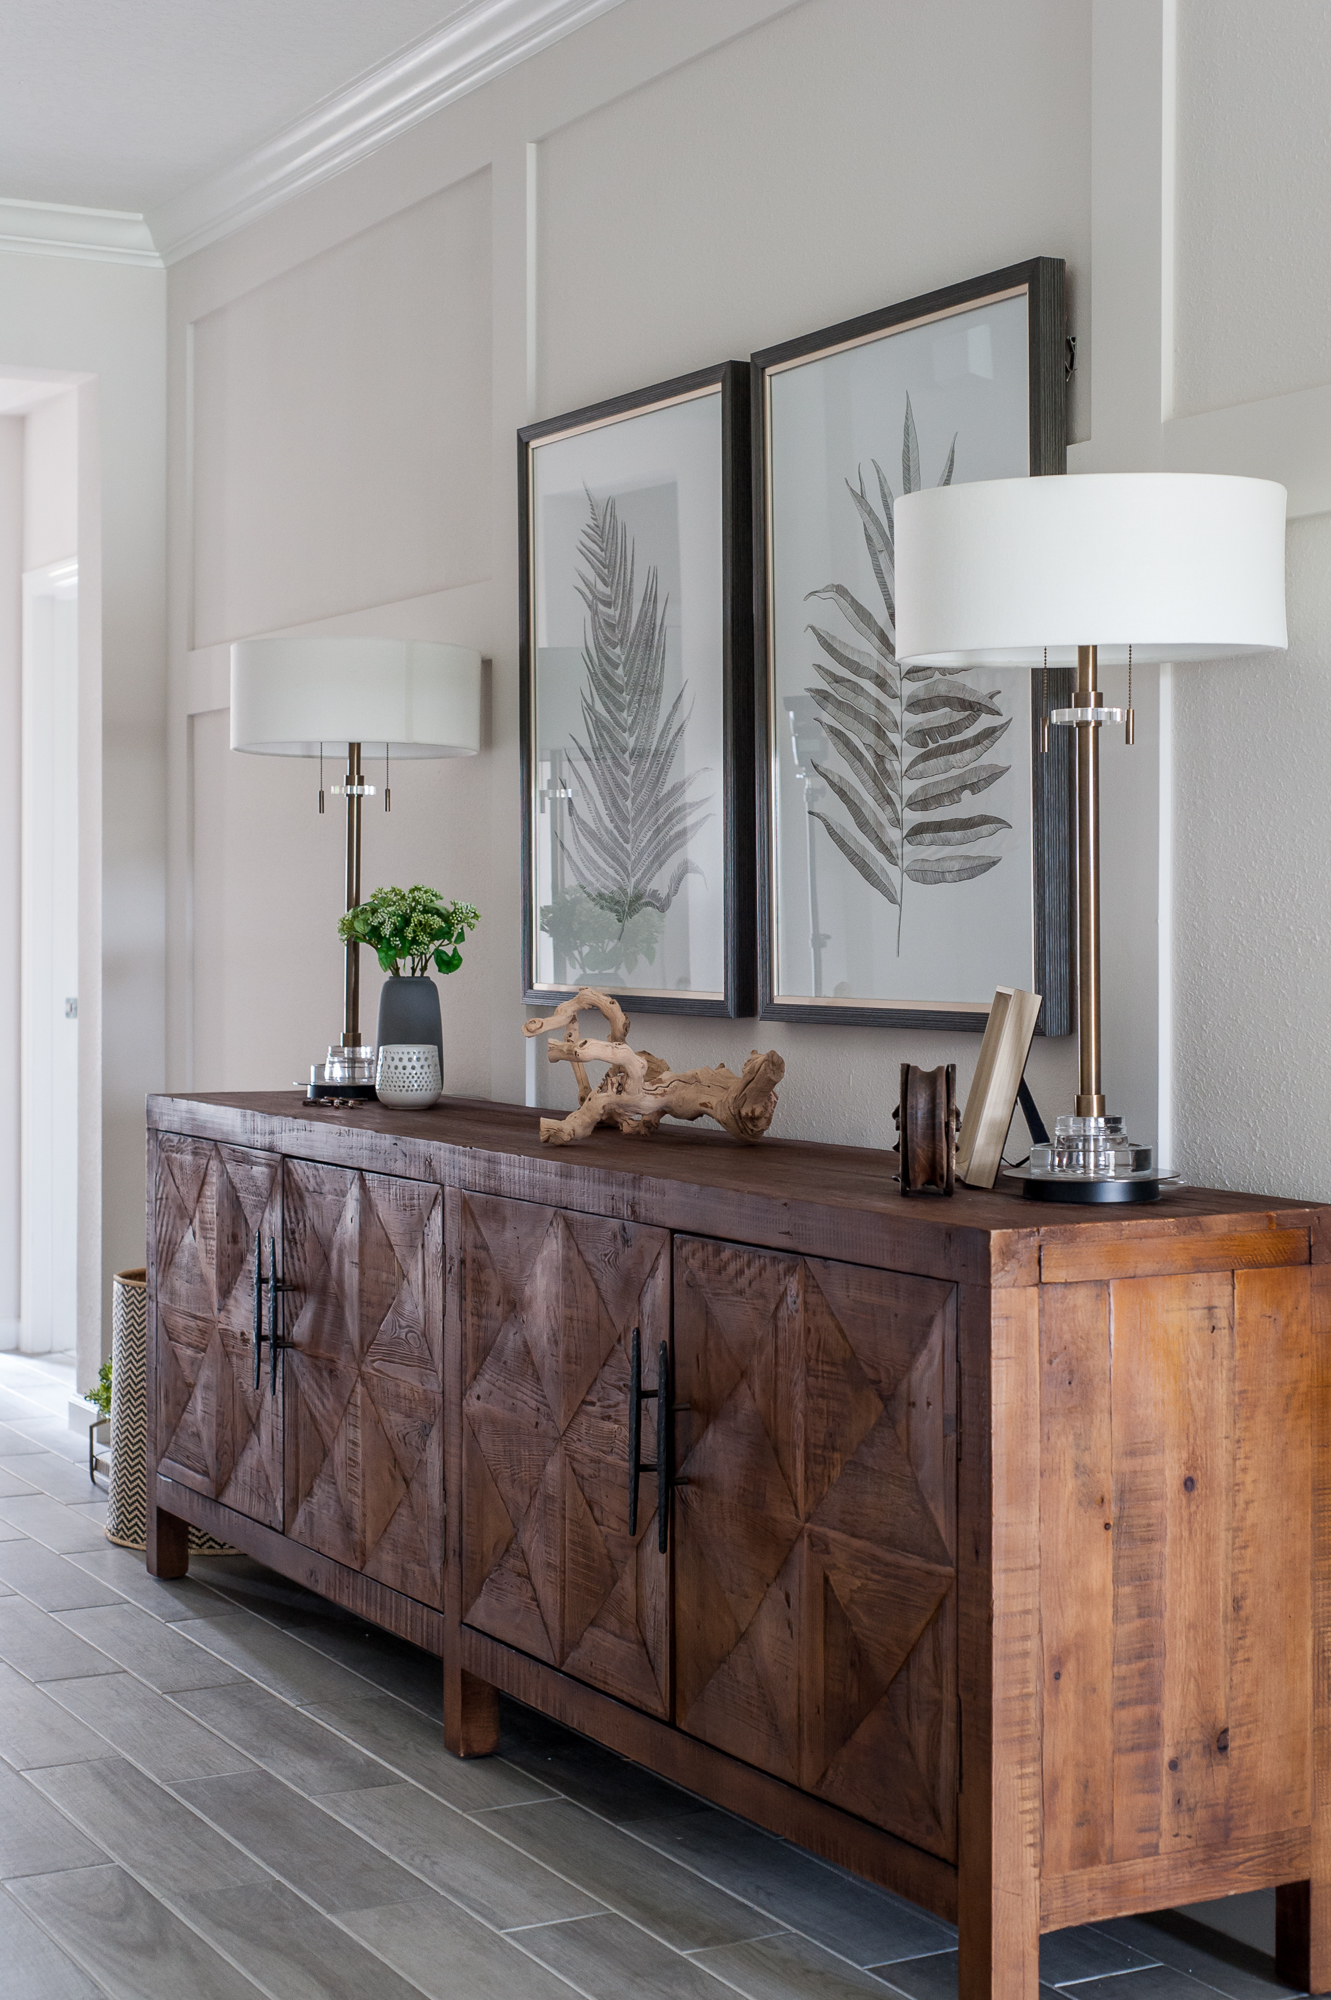 Micamy Design Studio_Model Home_Interior Design_Orchard Cove_Modern Coastal_Universal_McGee & Co_Classic Home_Uttermost_Foyer_Console.jpg